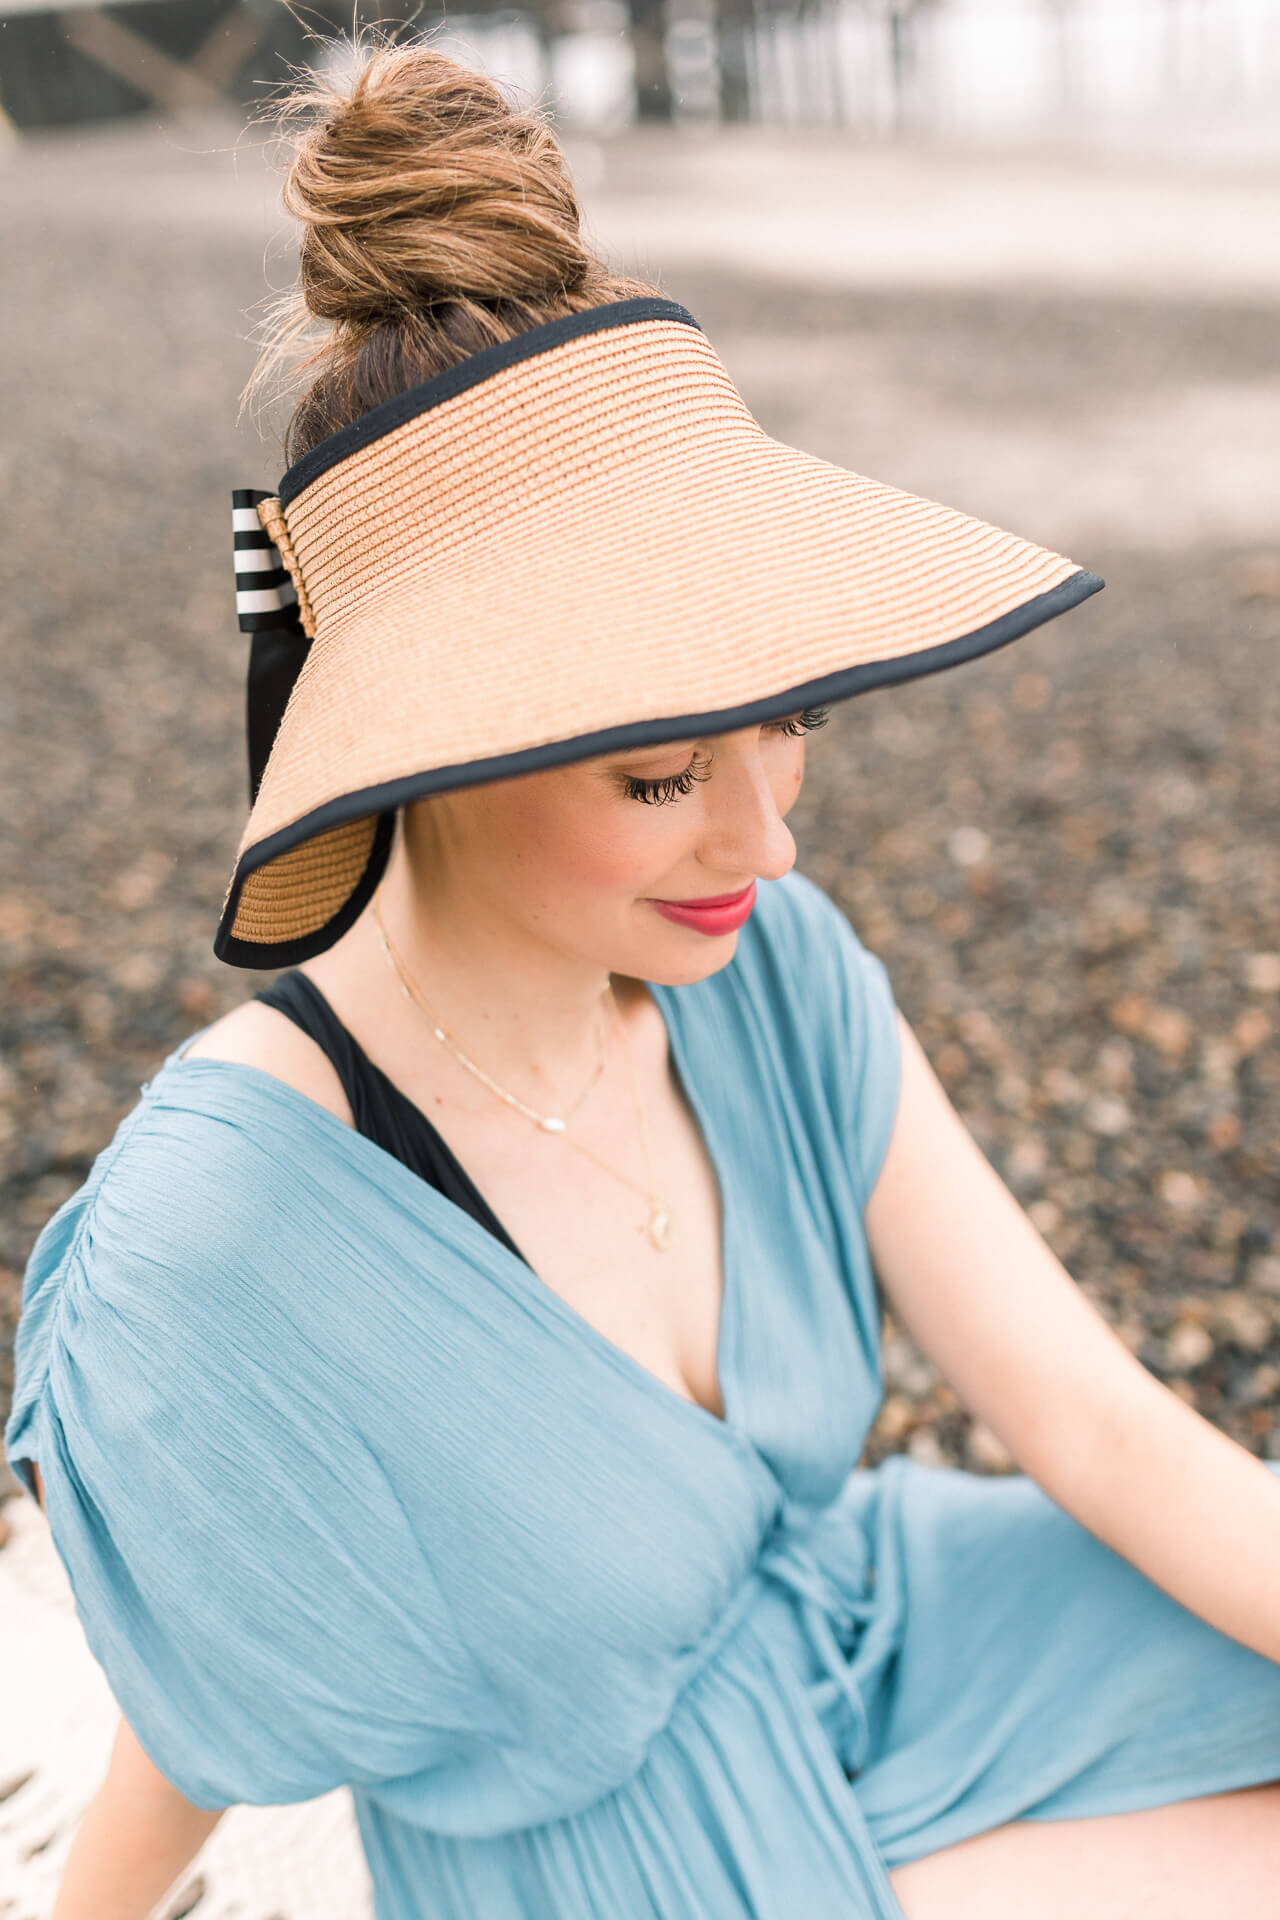 Cute straw hat visor for the beach - M Loves M